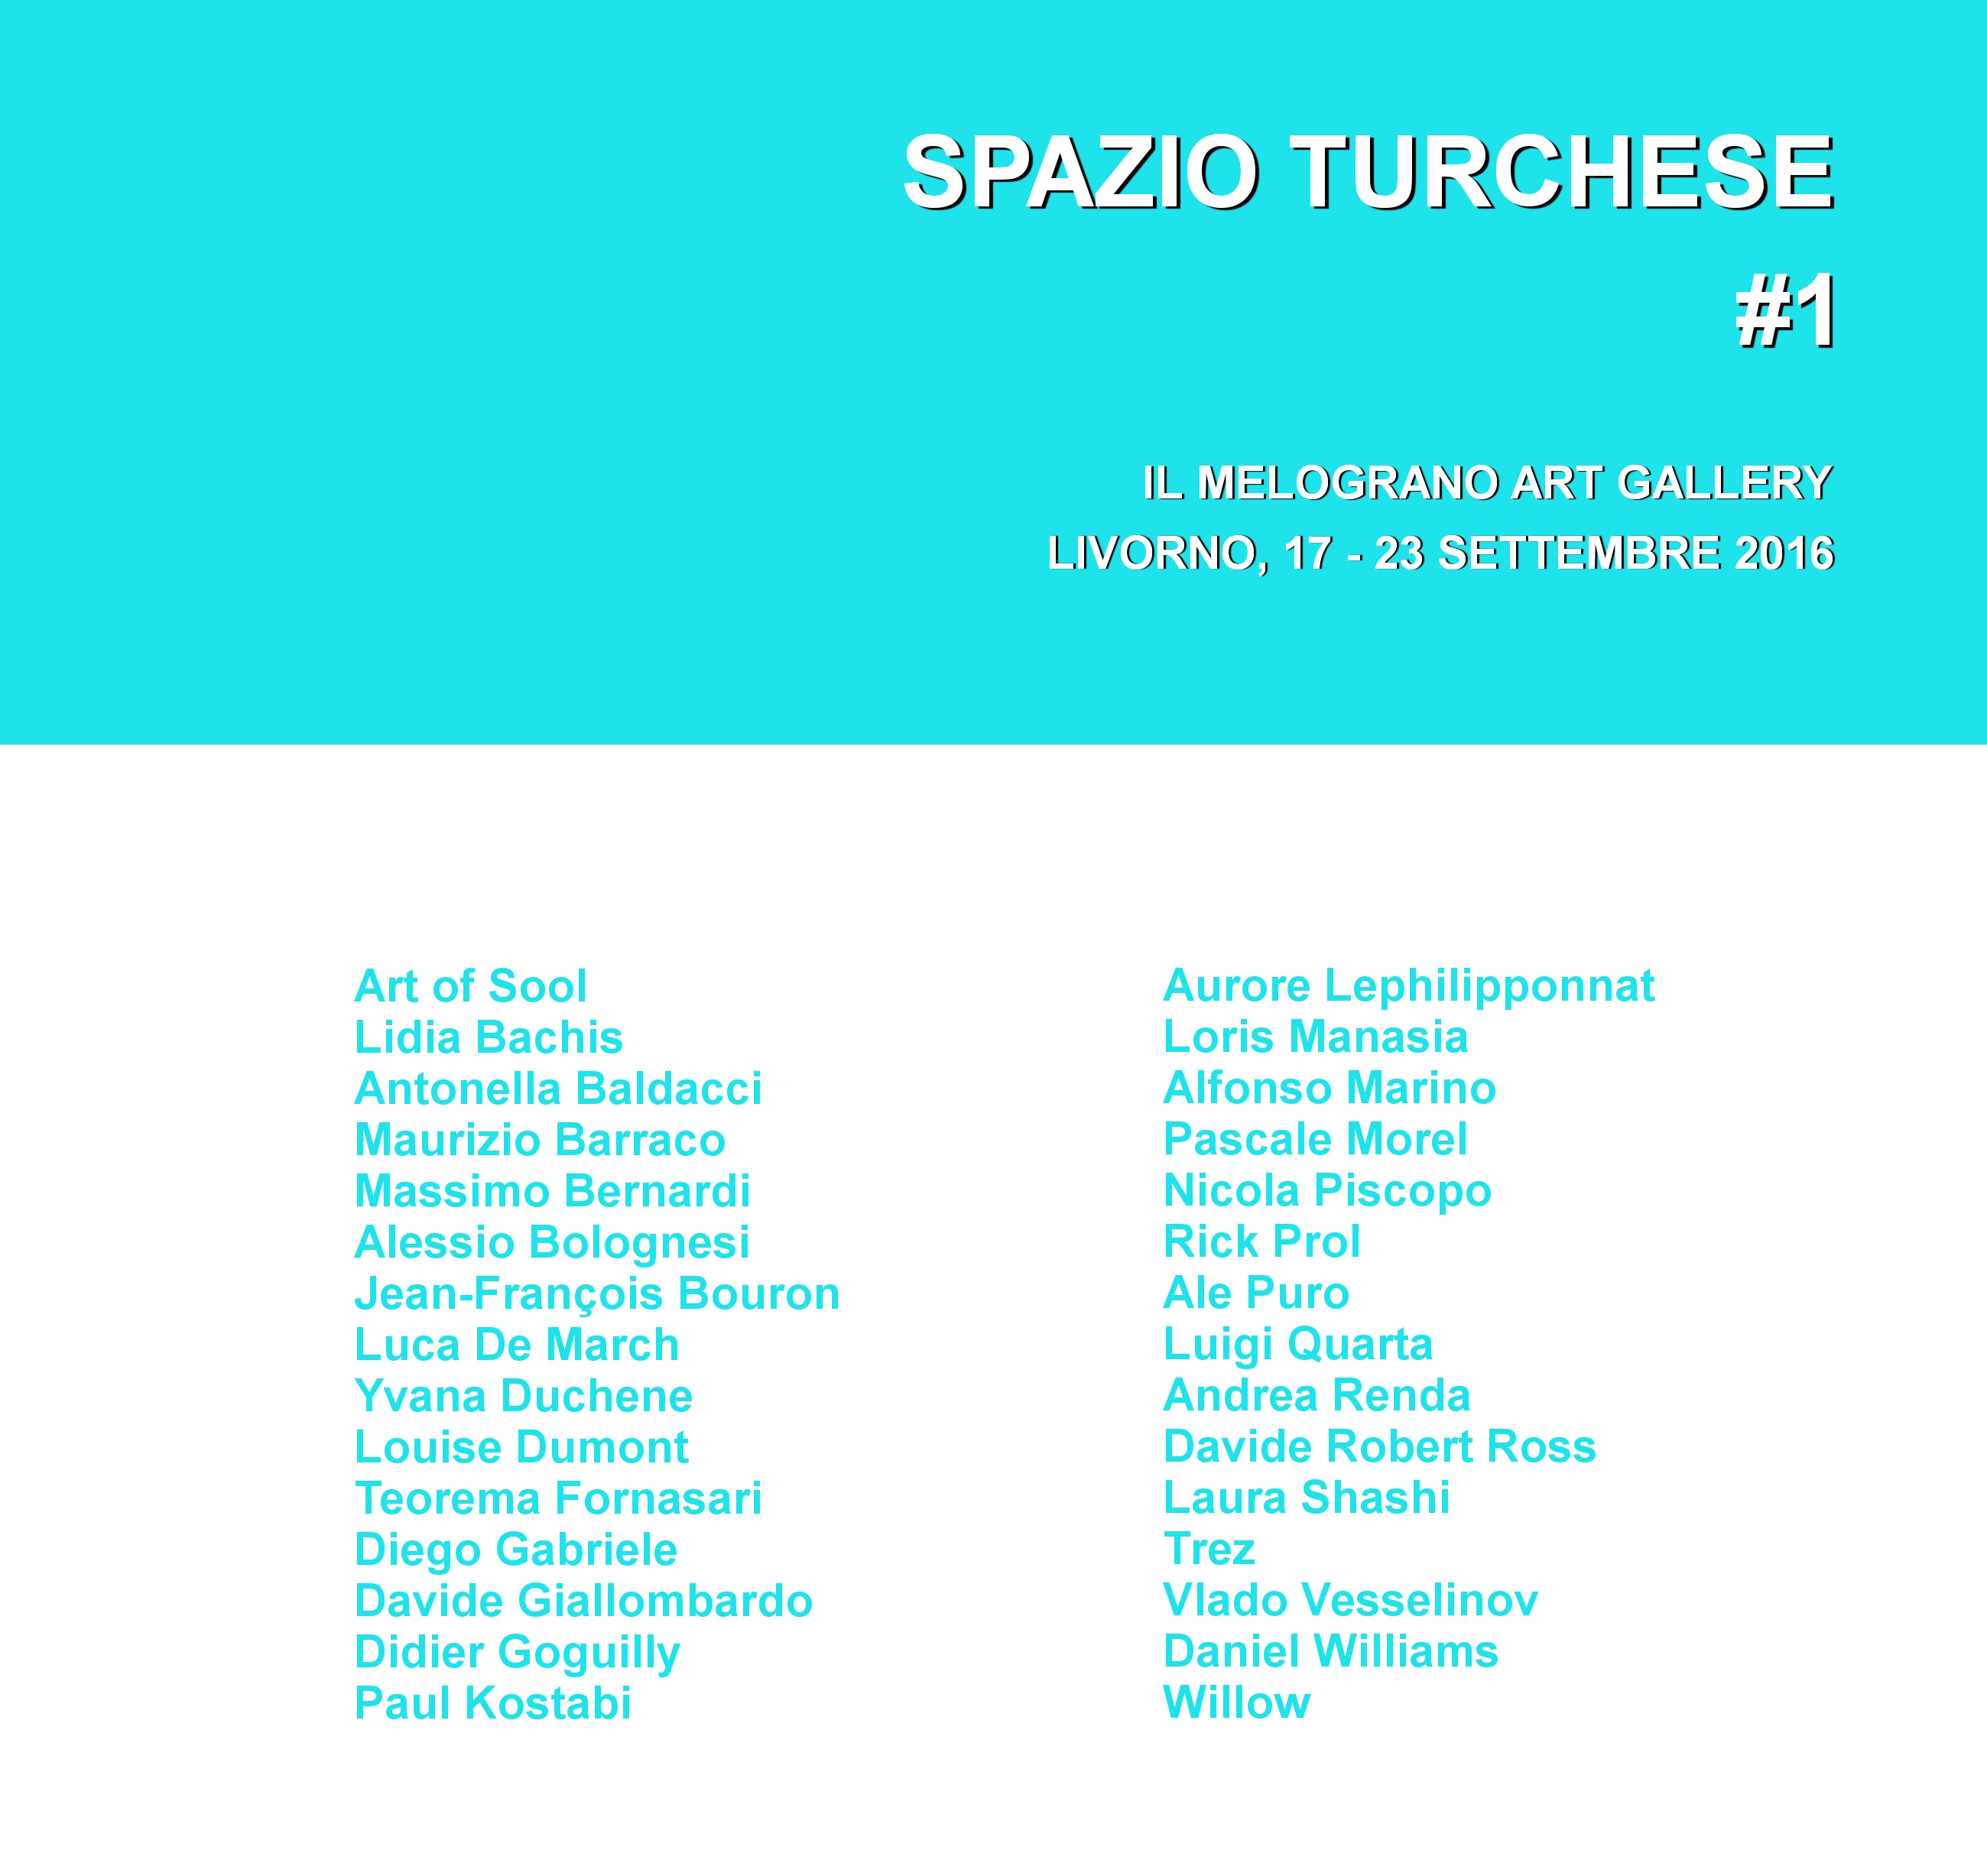 spazio-turchese-arte-contemporanea-il-melograno-art-gallery